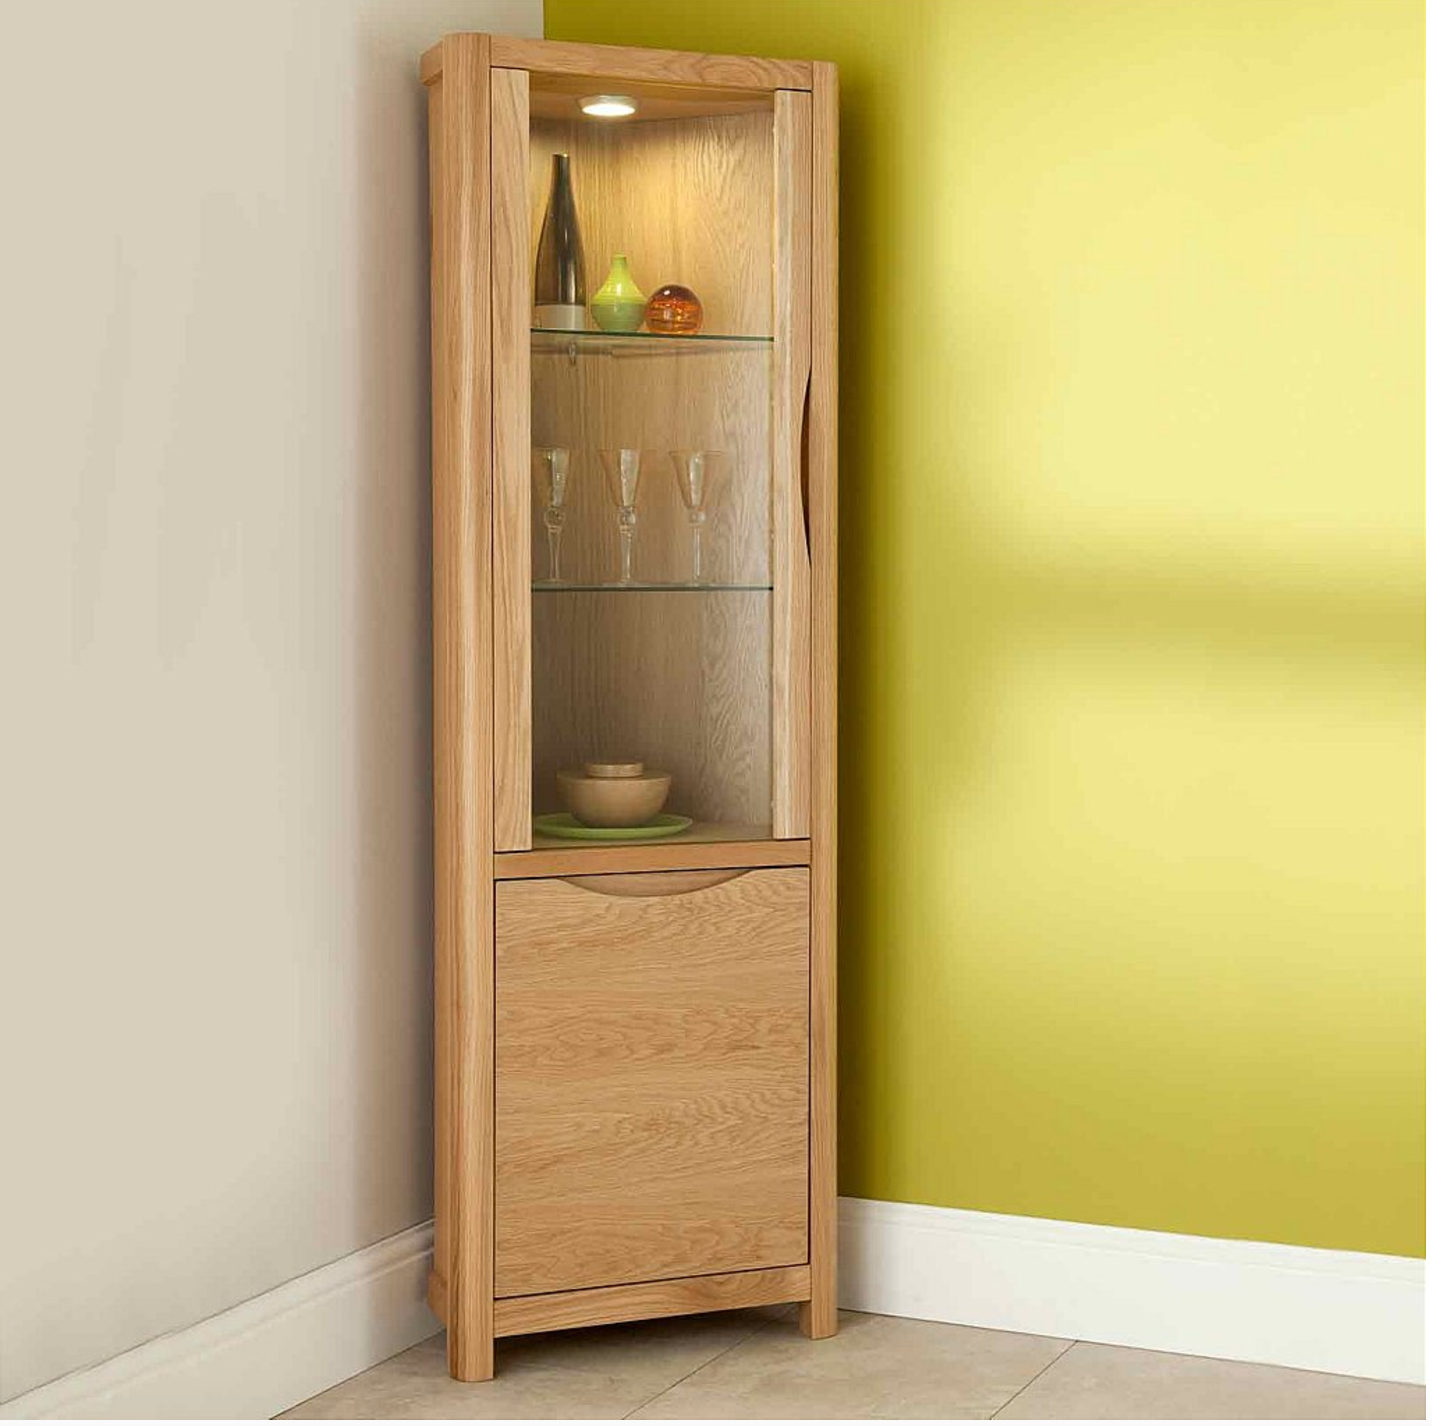 Pin By Aliza G On Decor Ideas Furniture Rooms Wall Display Cabinet Corner Display Cabinet Oak Display Cabinet